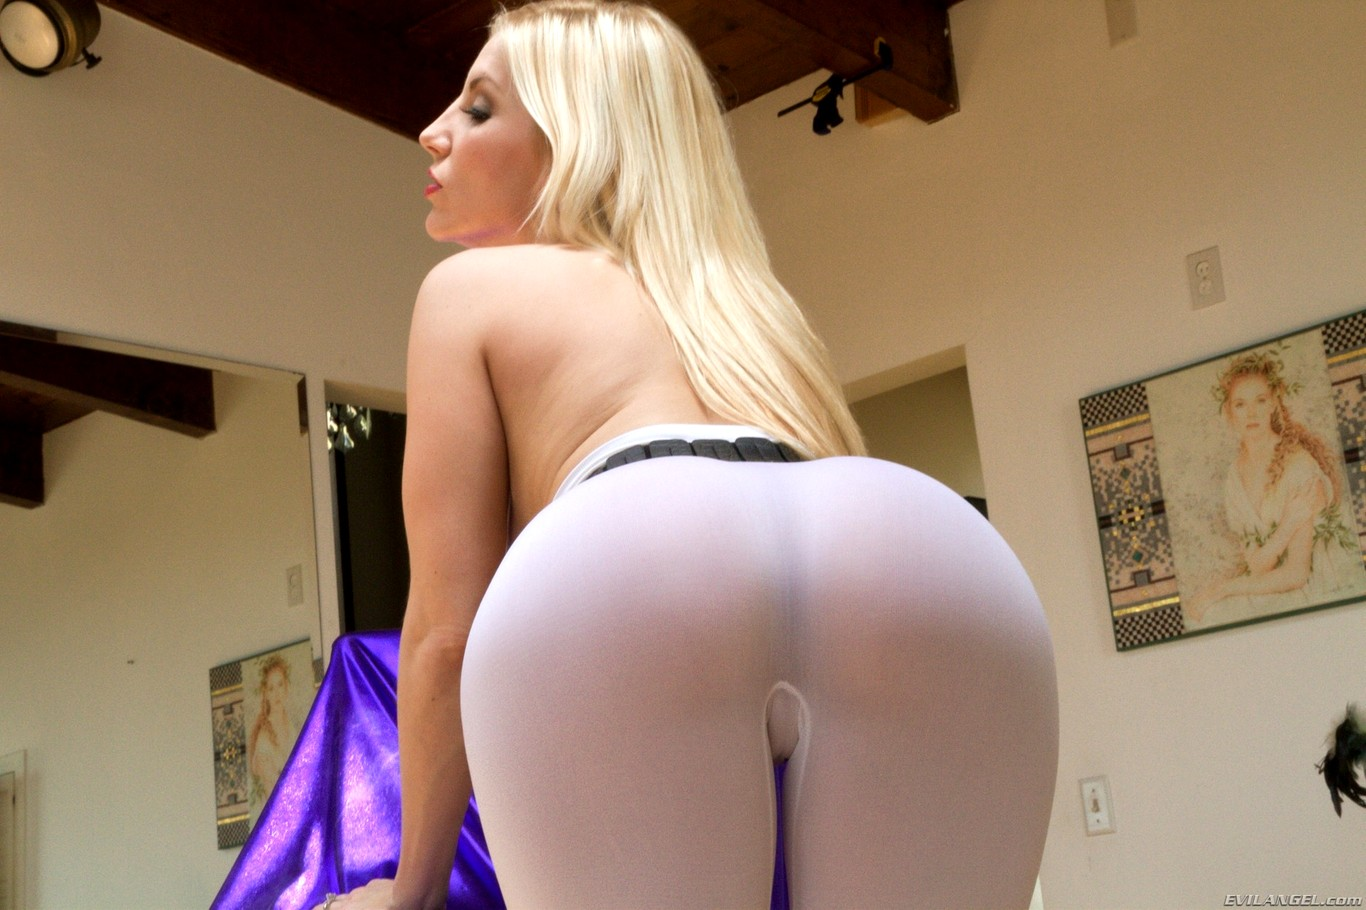 legging-white-porn-adult-home-videos-party-orgy